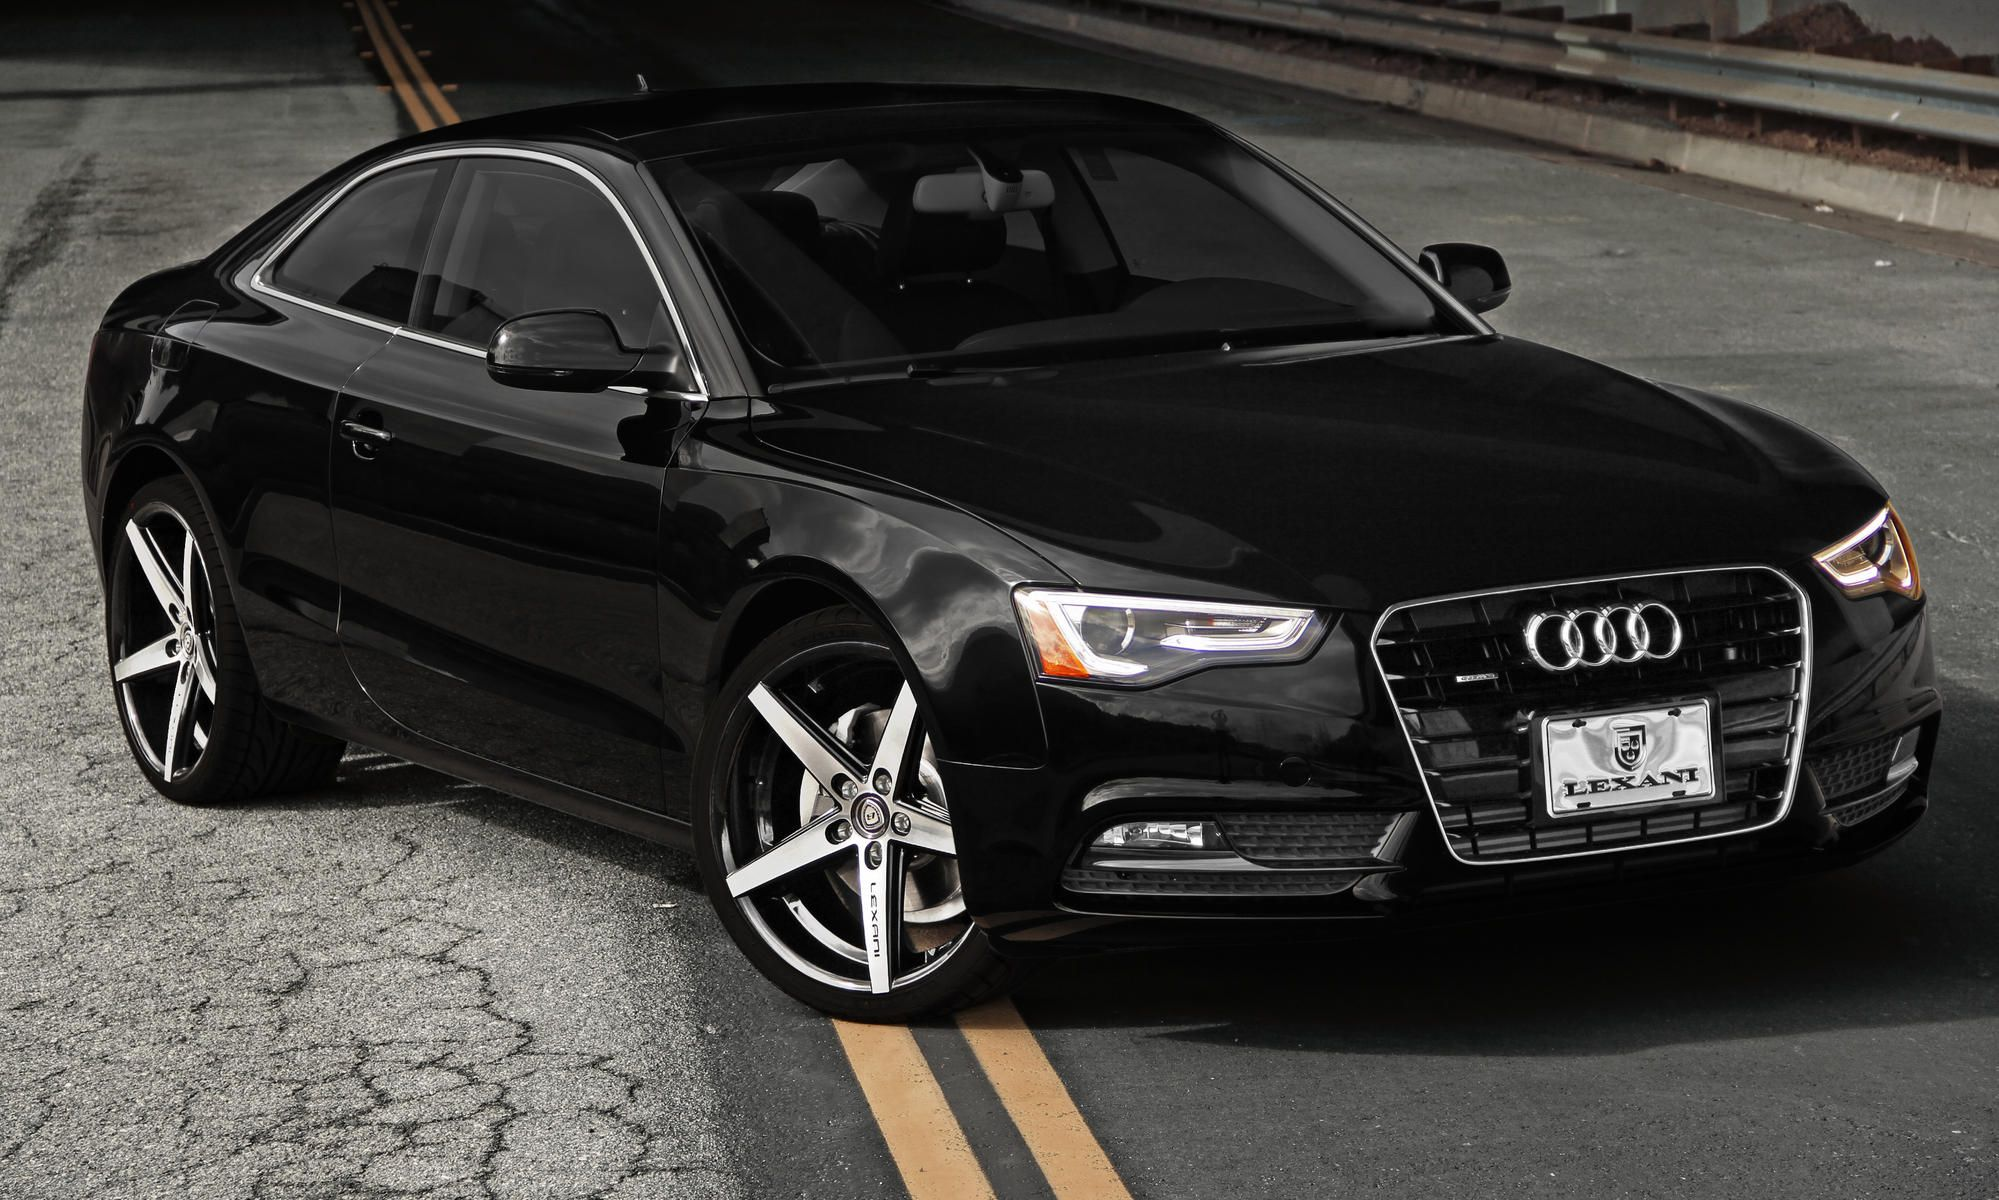 2013 black audi a5 my lovely future car or for that matter any other audi would be just fine. Black Bedroom Furniture Sets. Home Design Ideas